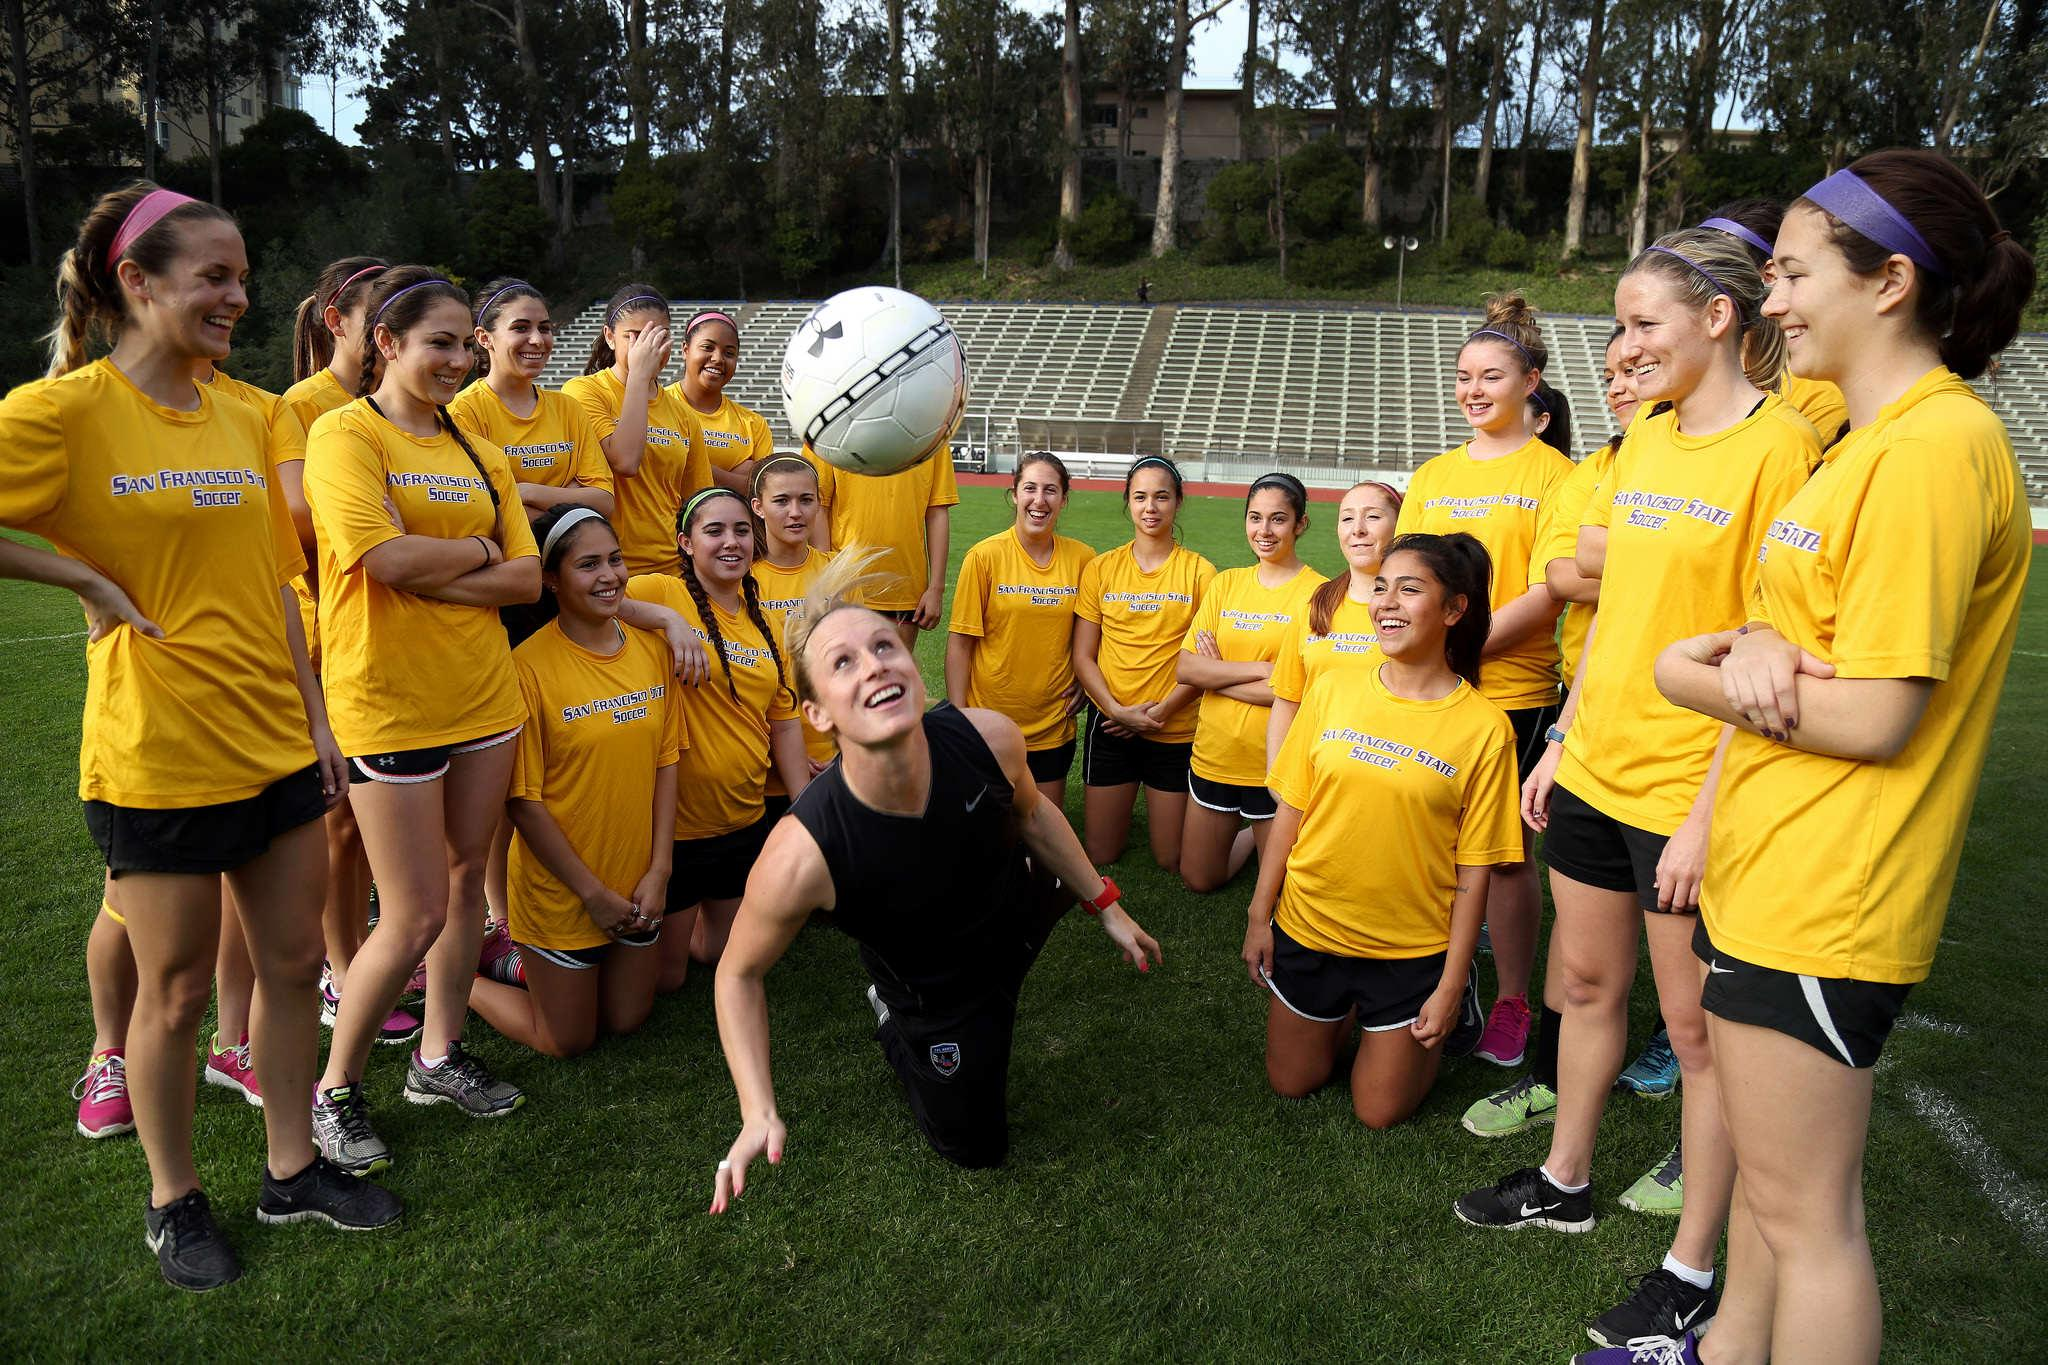 Tracy Hamm, SF State's new Head Women's Soccer Coach is the second in the 33-years, succeeding Jack Hyde. Hamm juggles with the ball surrounding the team at Cox Stadium on Monday Feb. 2, 2015. (Emma Chiang/Xpress)